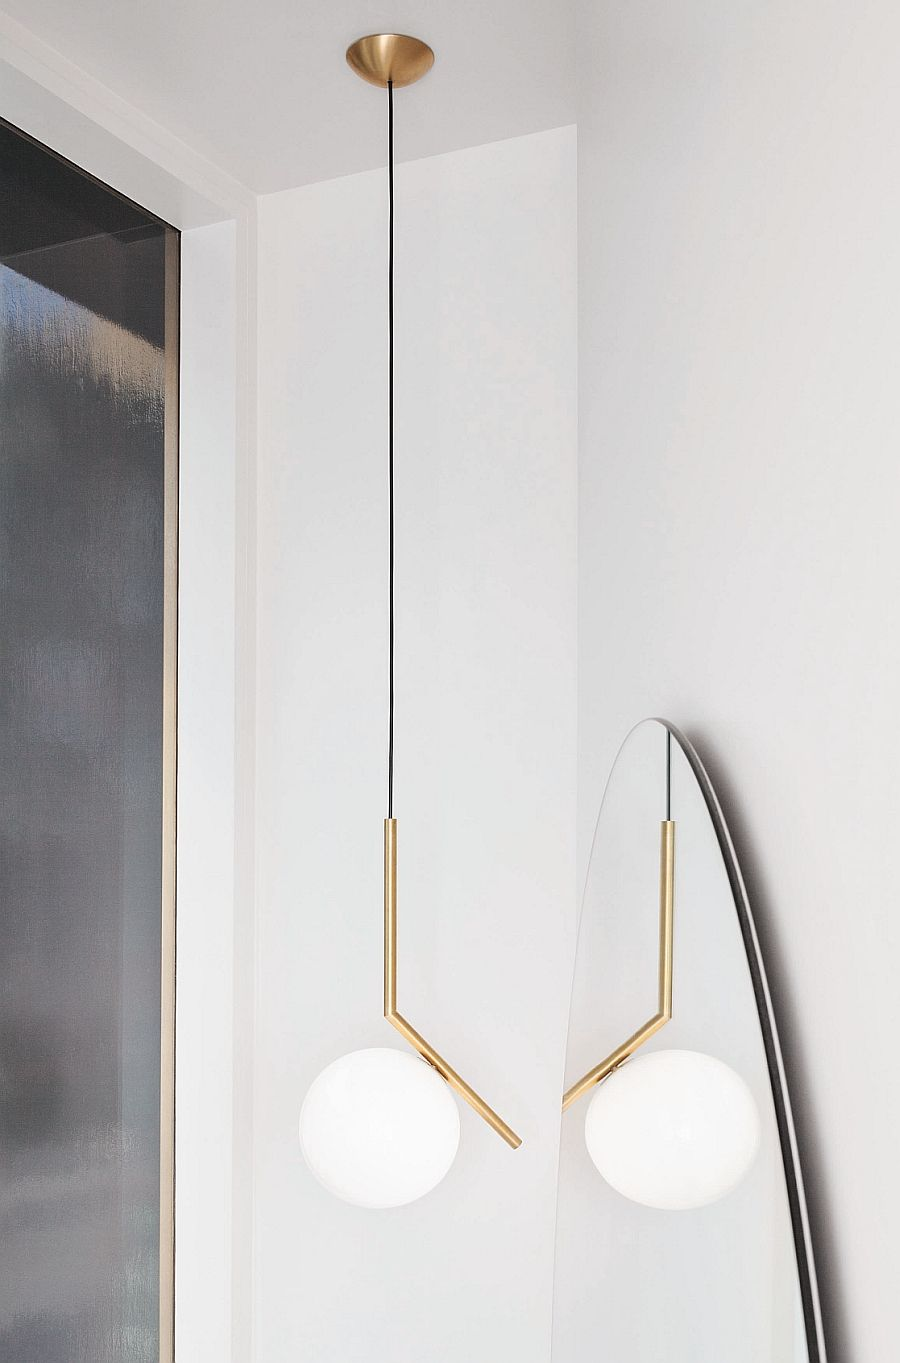 michael anastassiades for flos